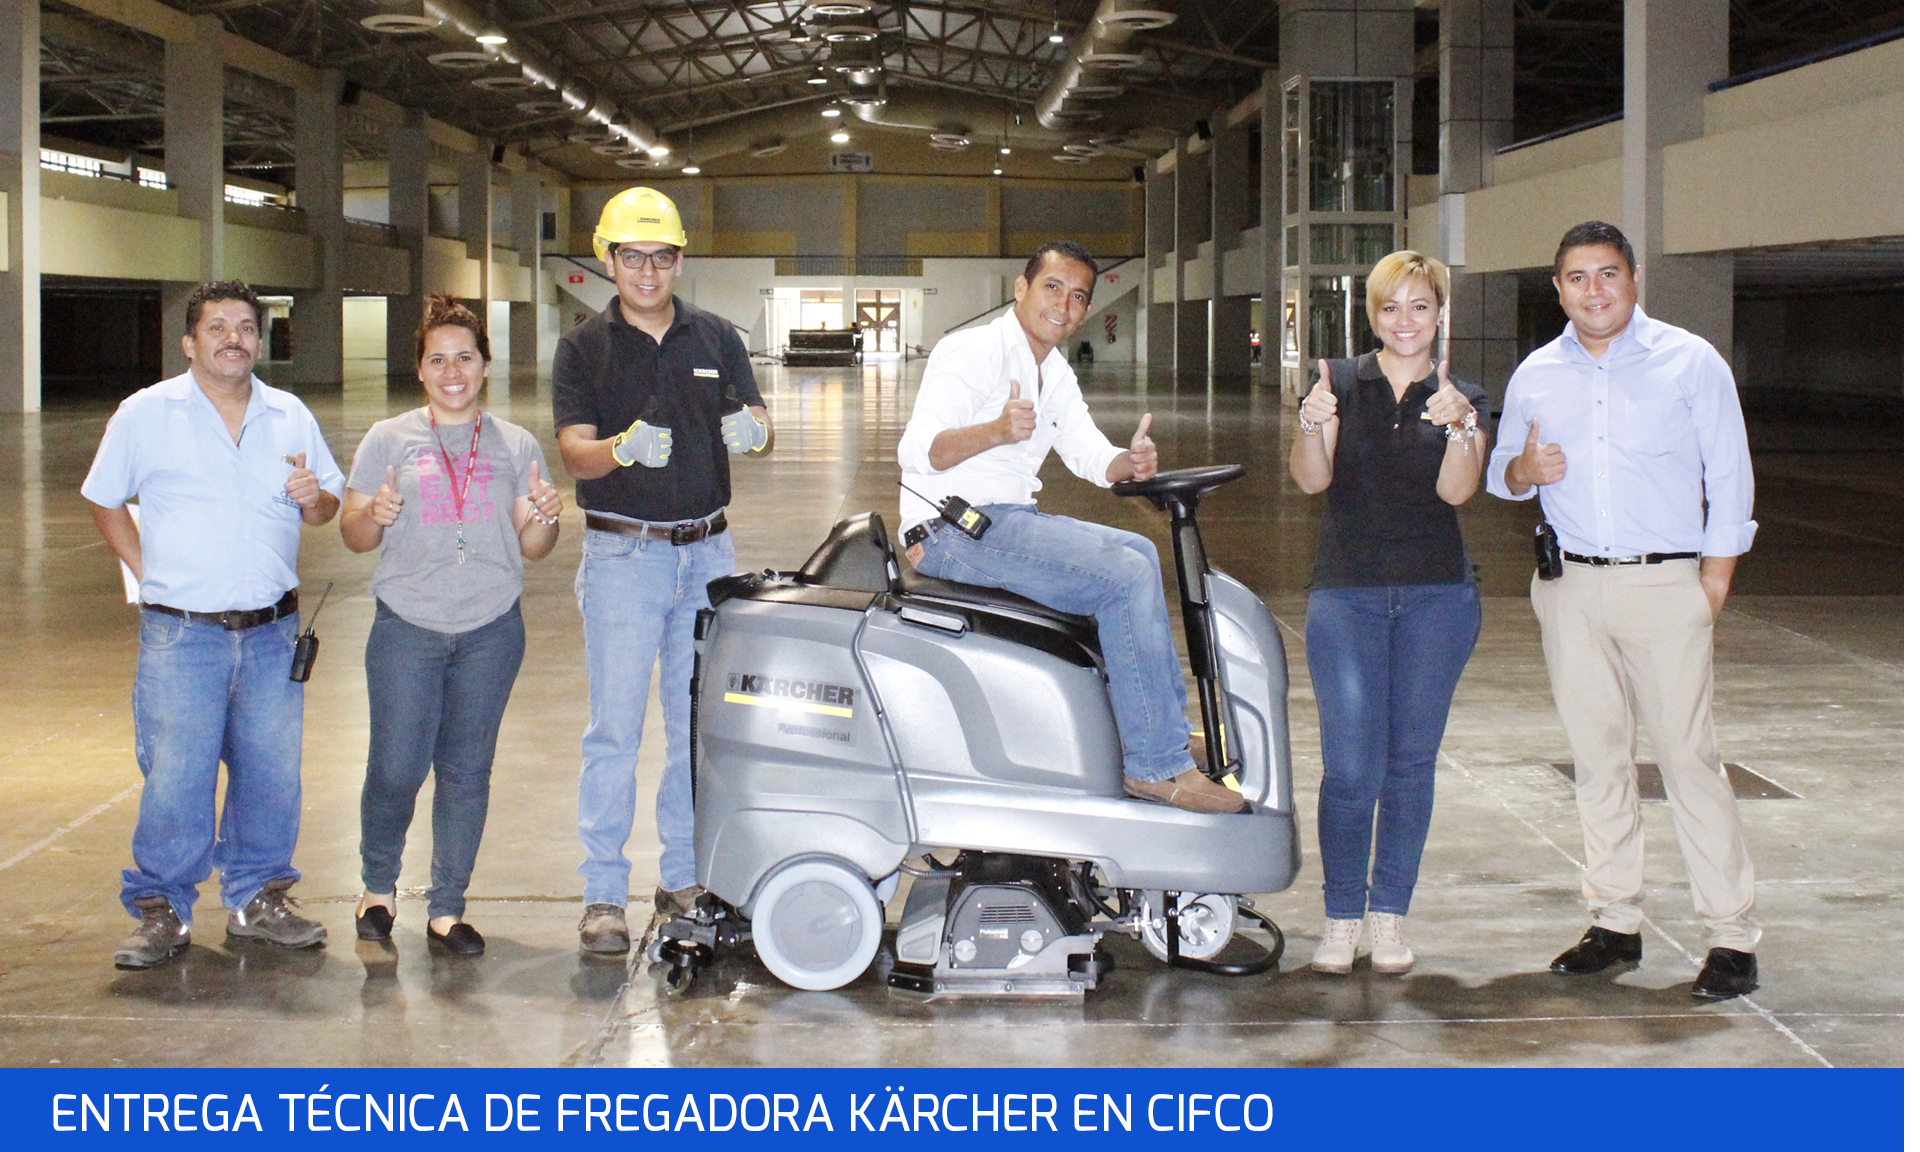 Entec_karcher CINTILLO